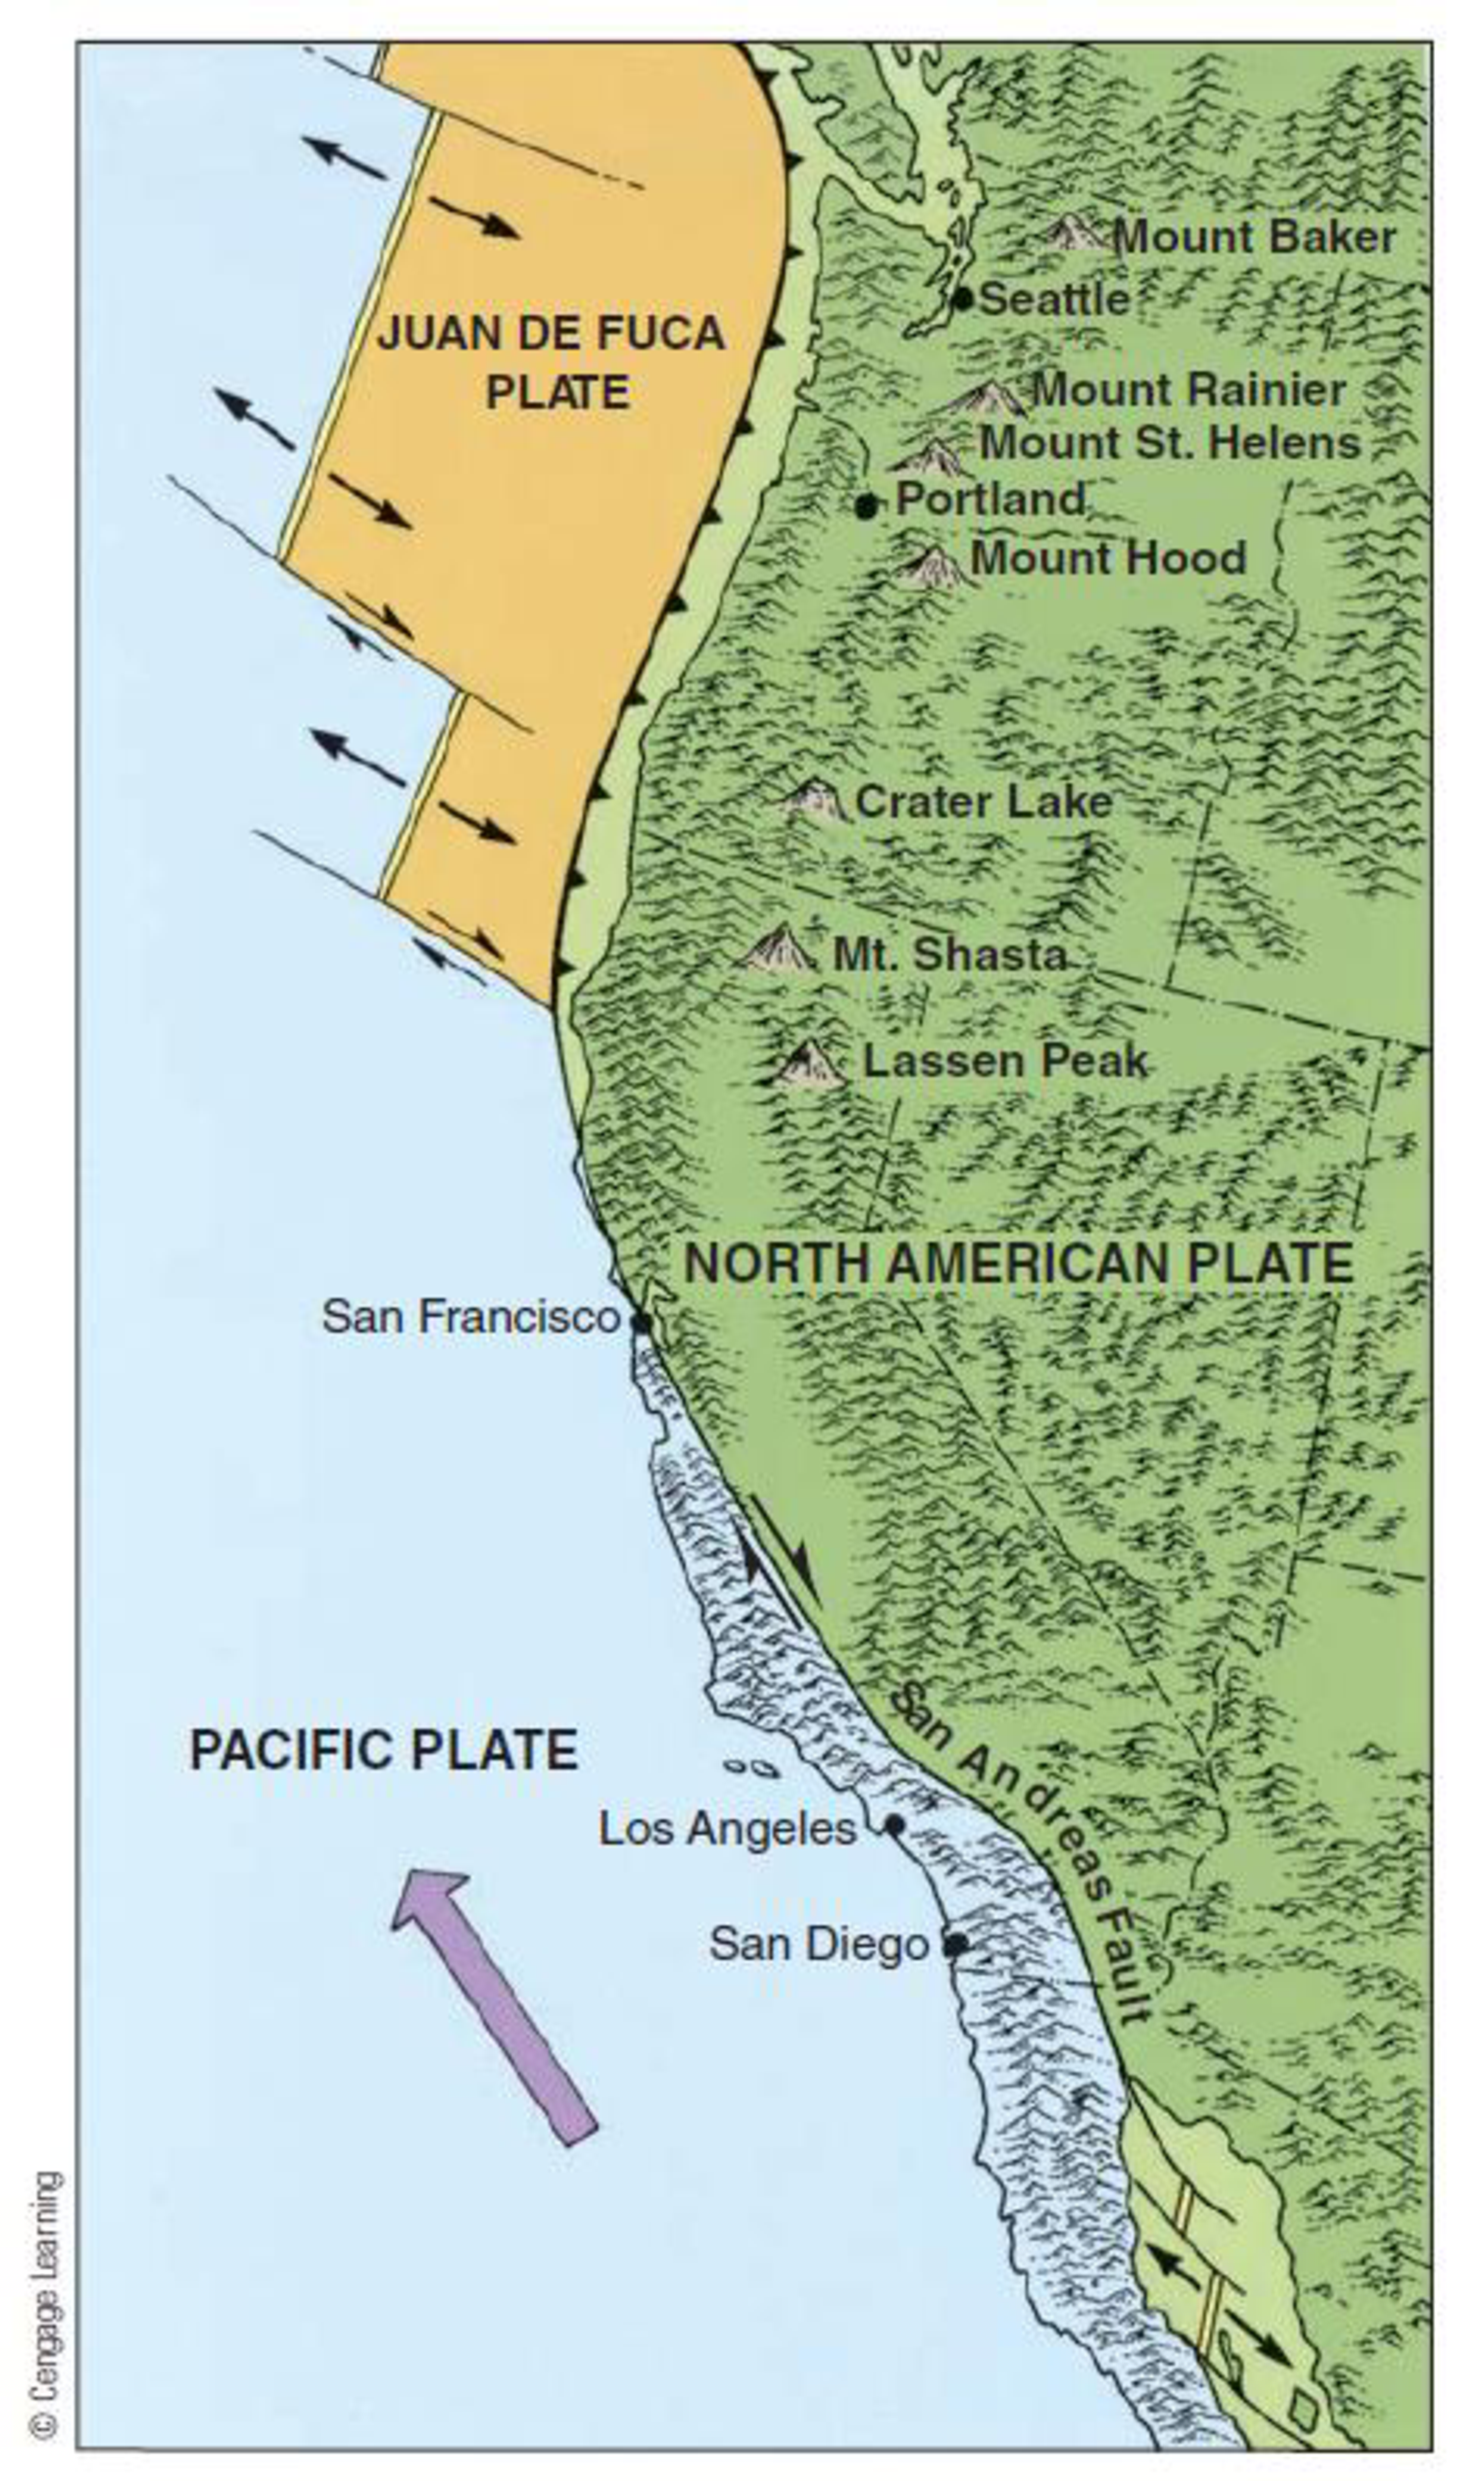 Chapter 10, Problem 31FQ, FIGURE 10.31 Along this lateral plate boundary, marked by the San Andreas Fault in western North